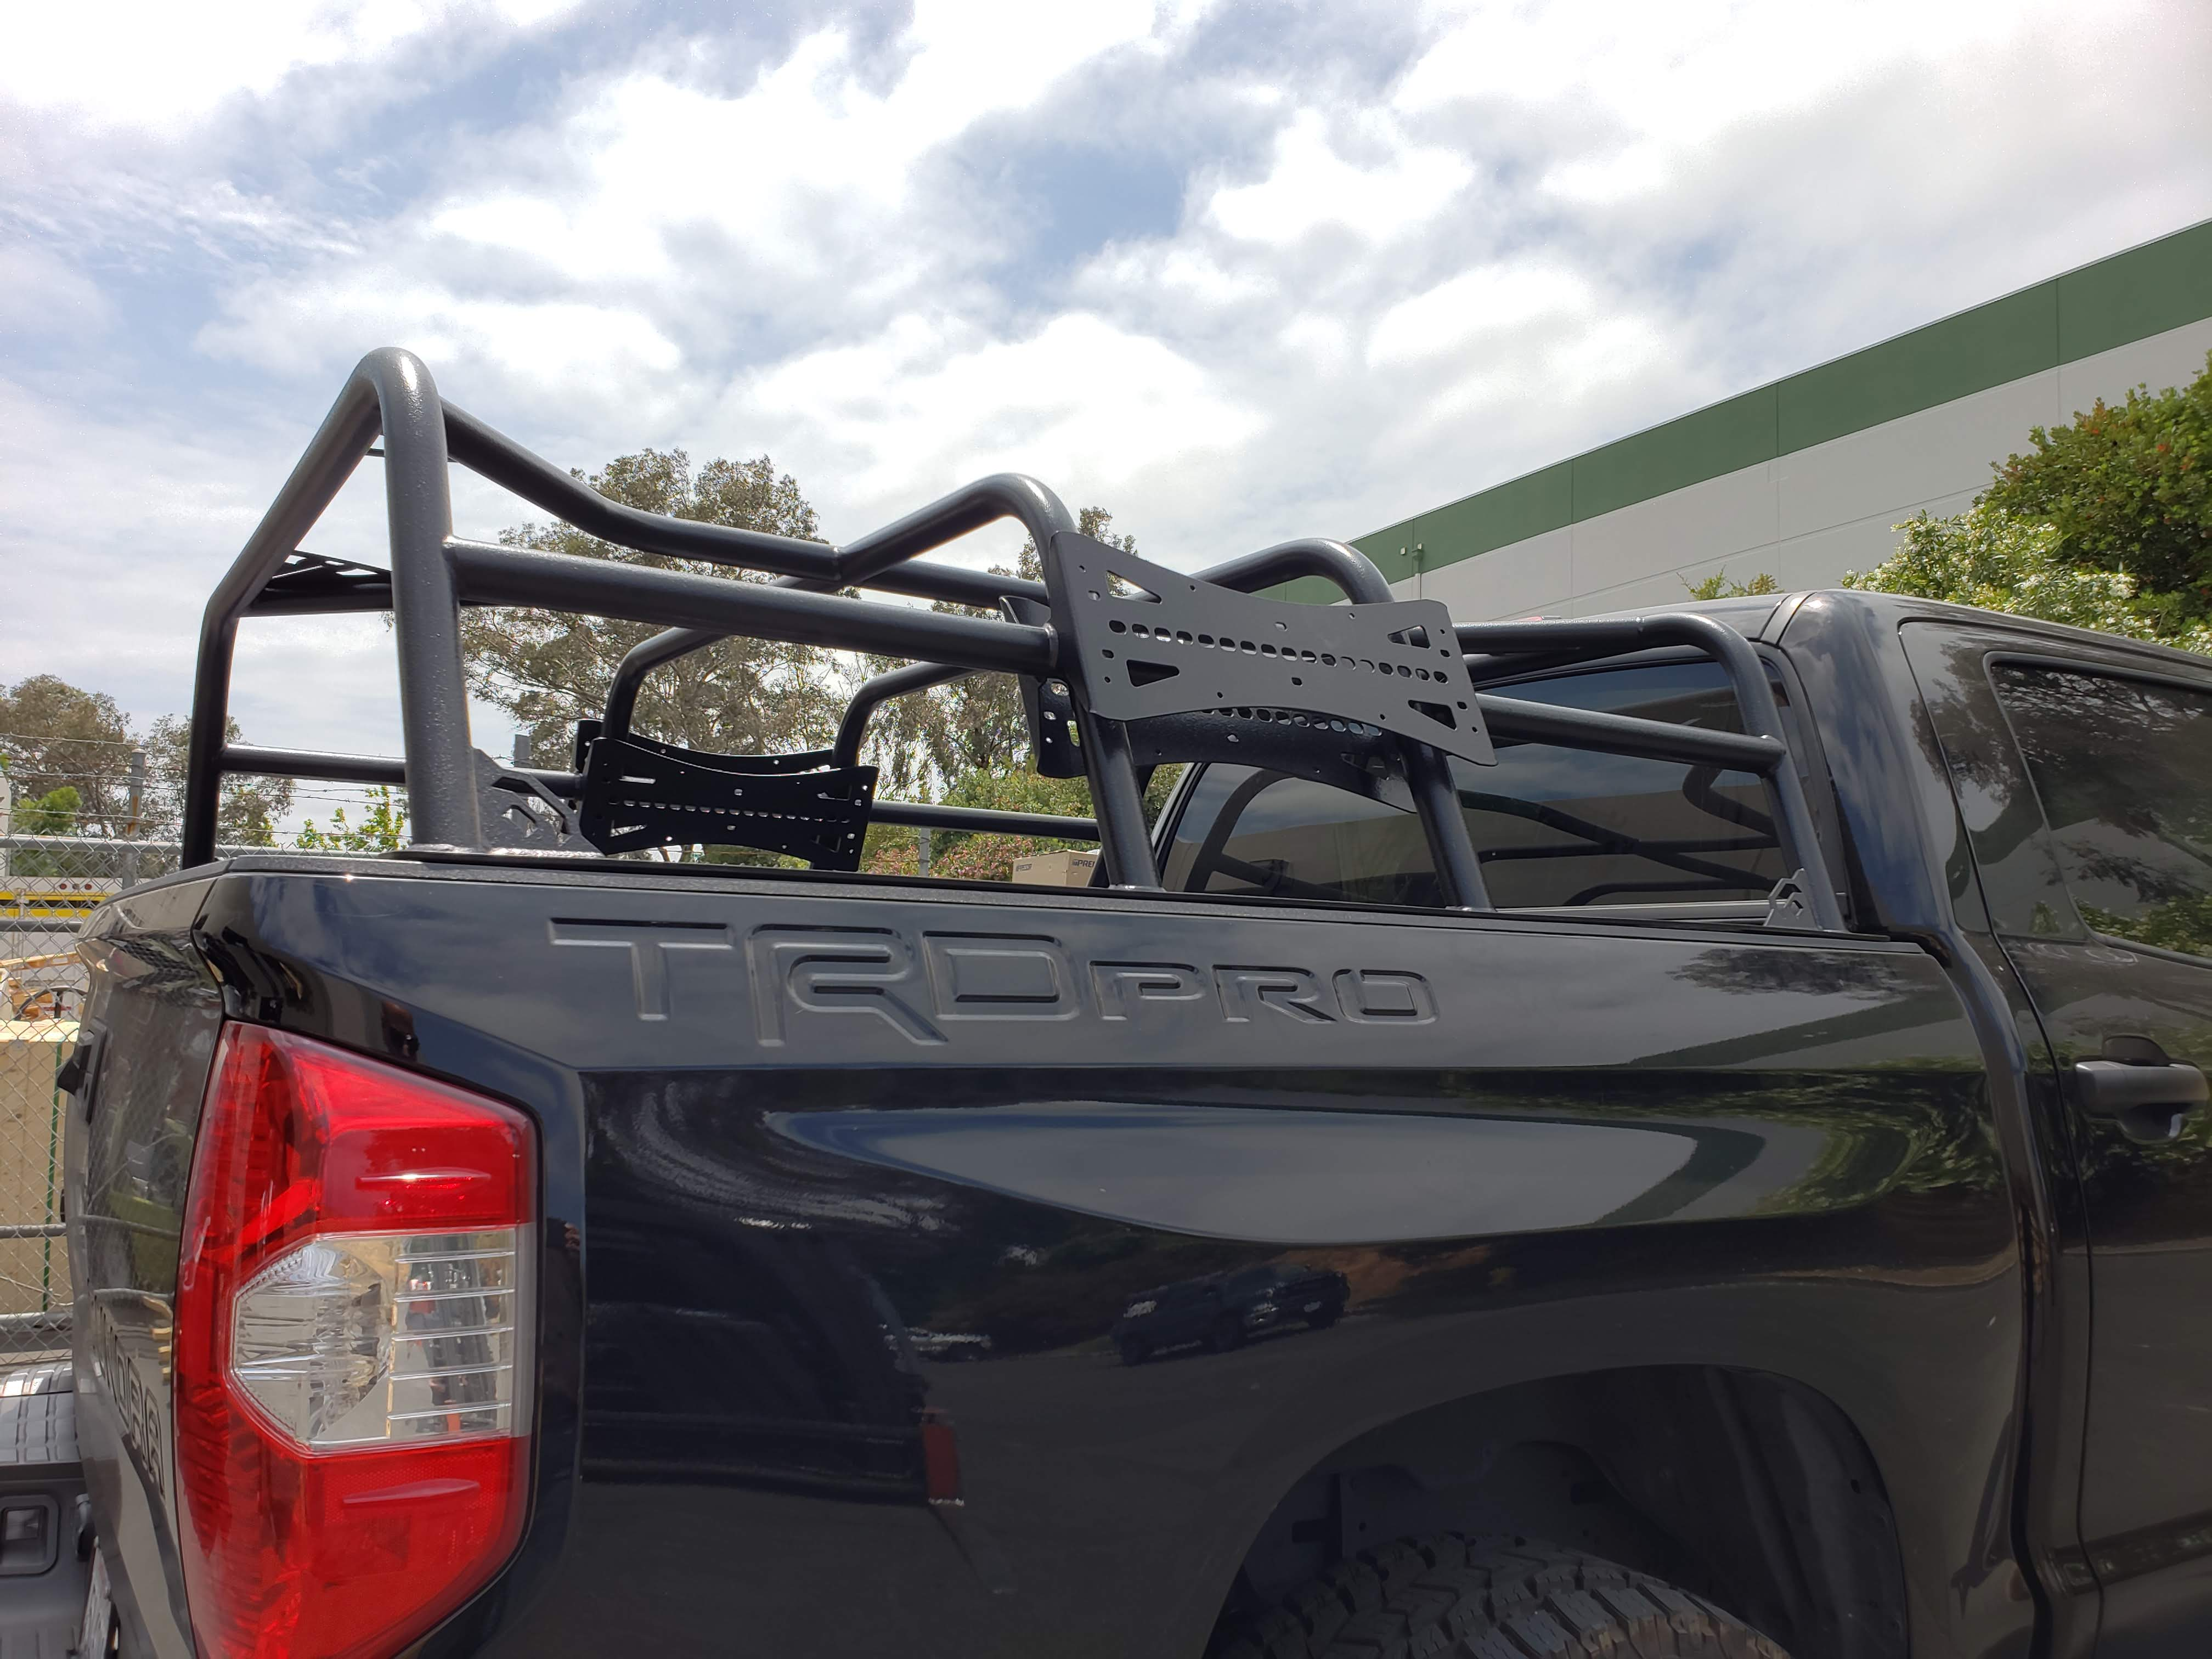 2007 To 2019 Tundra Crewmax Bed Rack